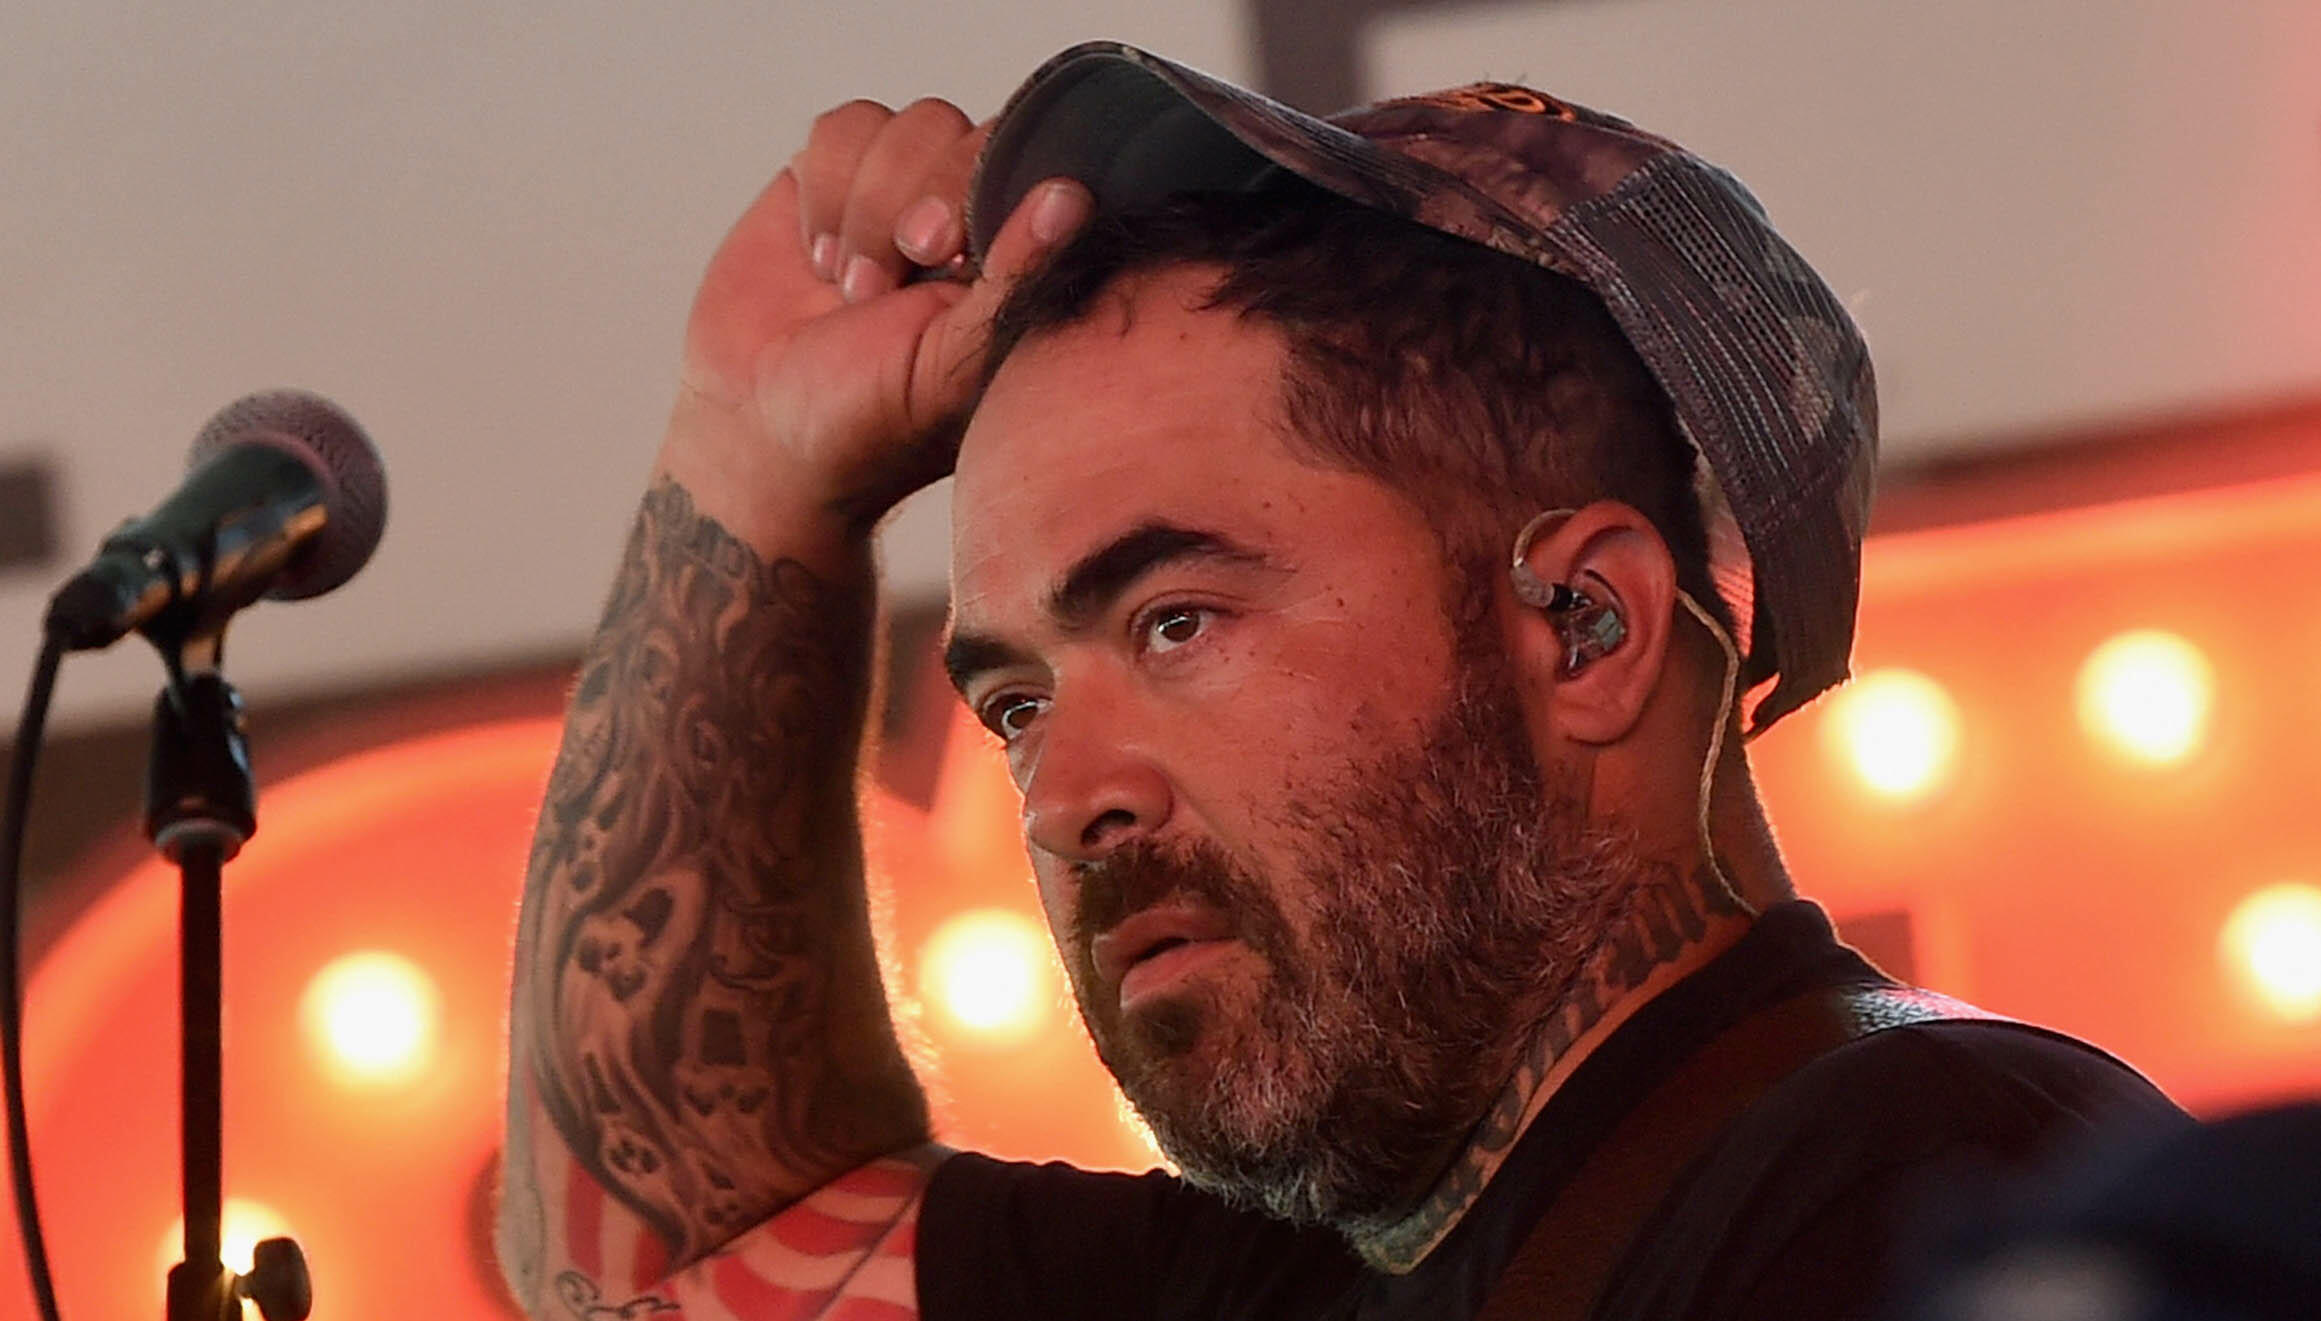 Staind's Aaron Lewis Goes Off on Heckler During Solo Show